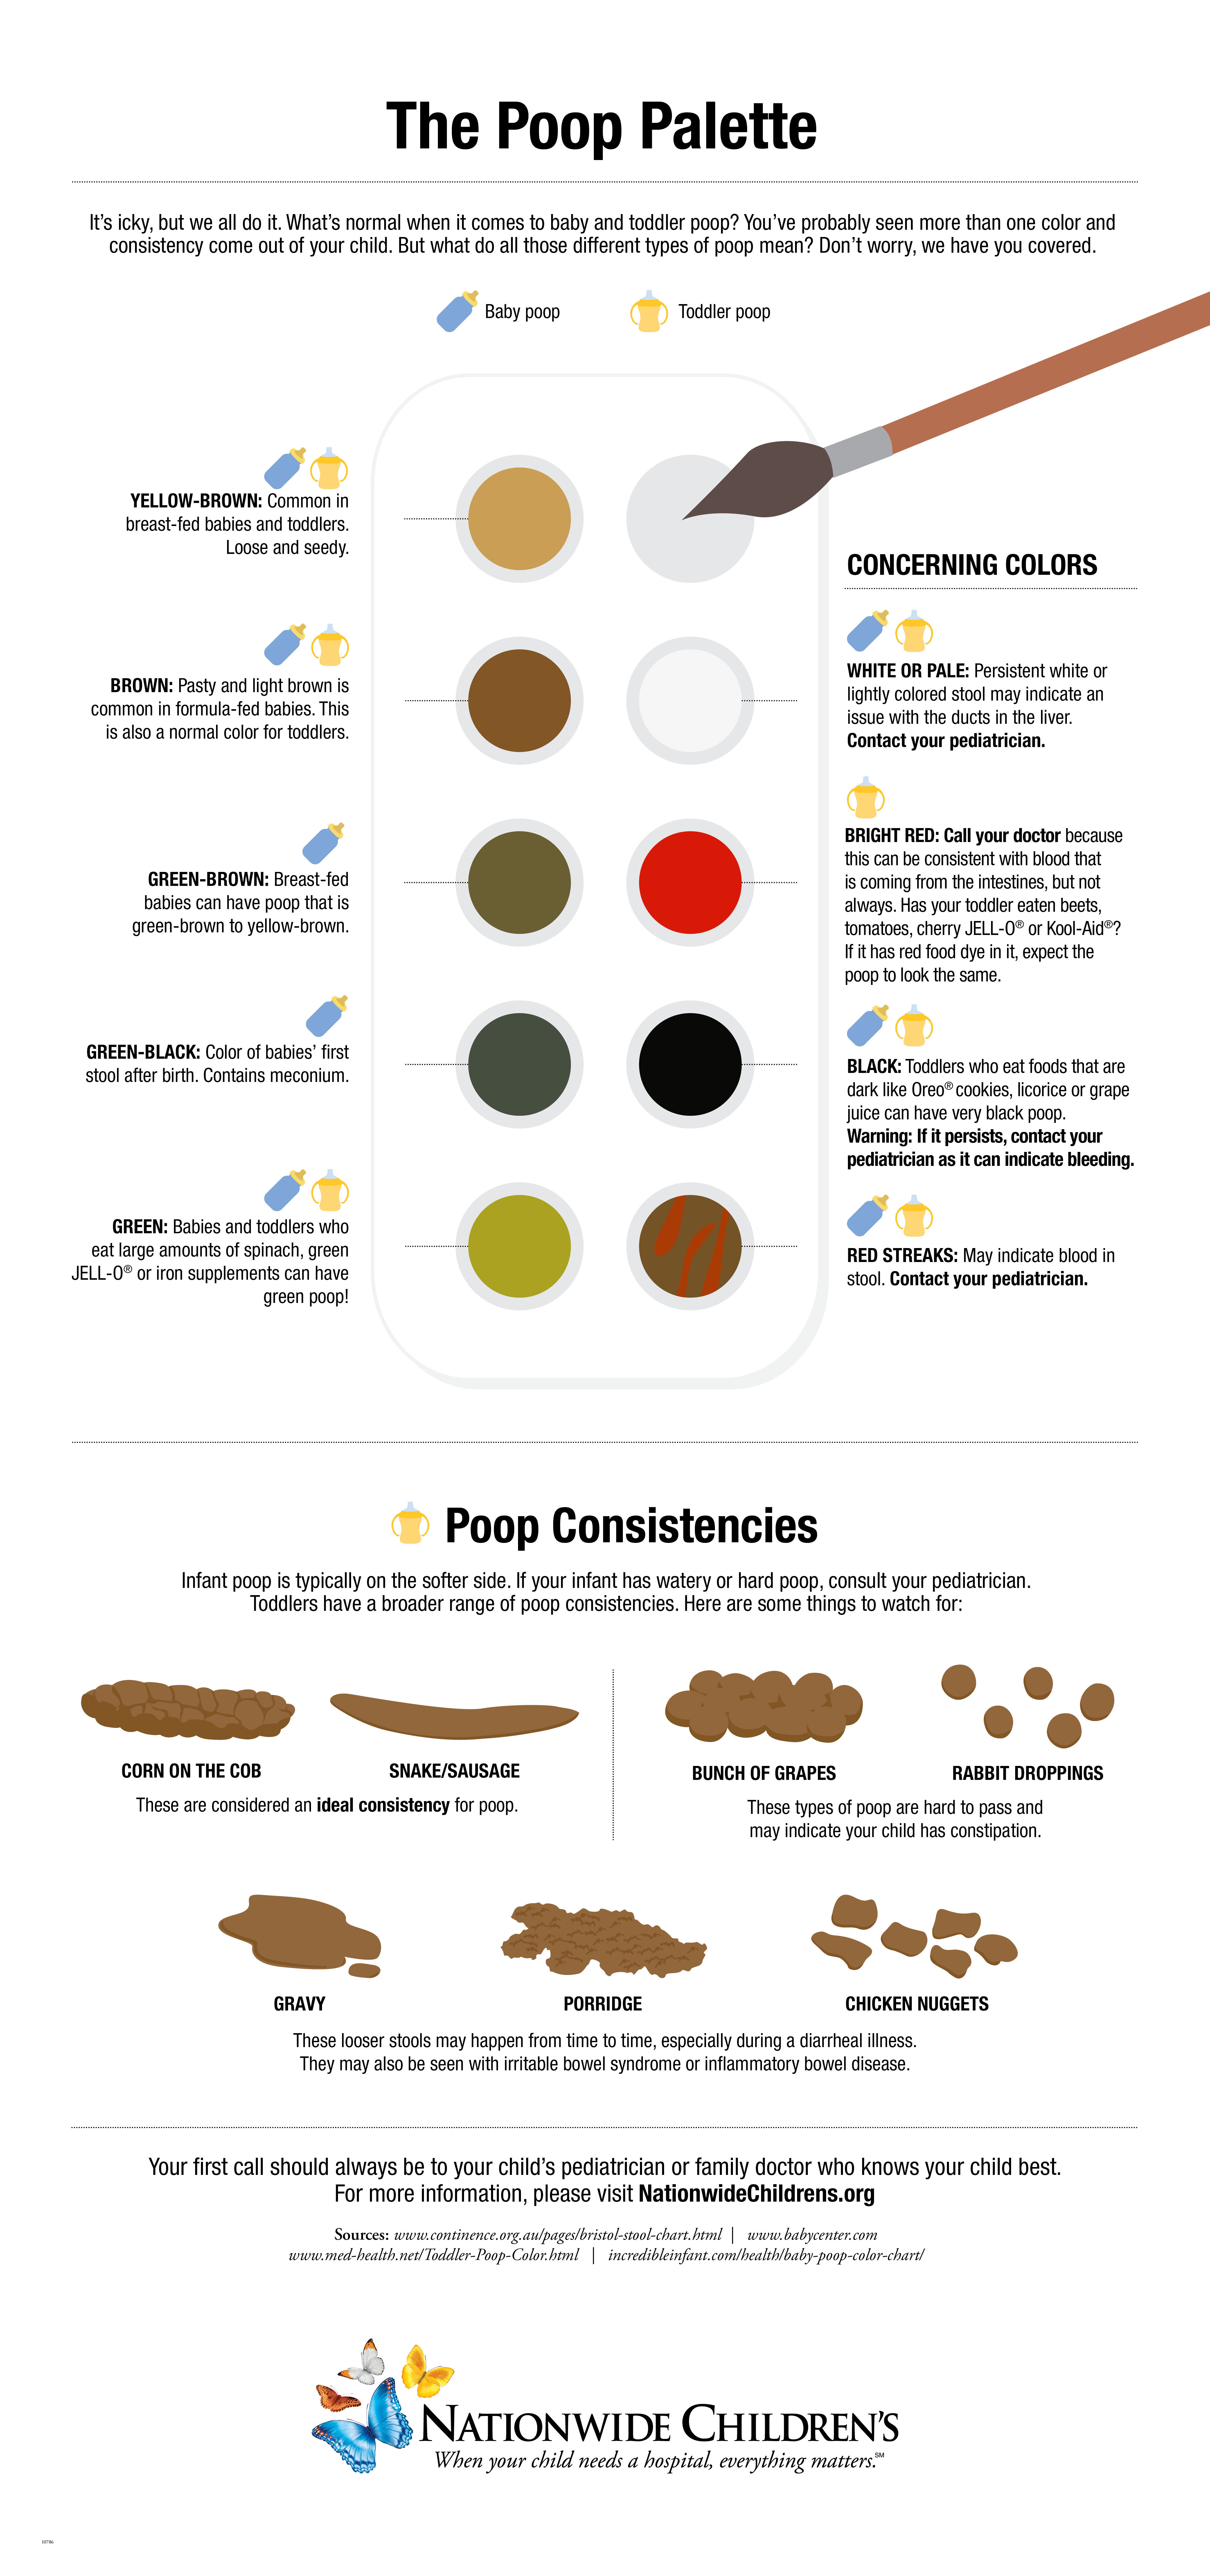 The Poop Palette: What Do All of Those Colors Mean?